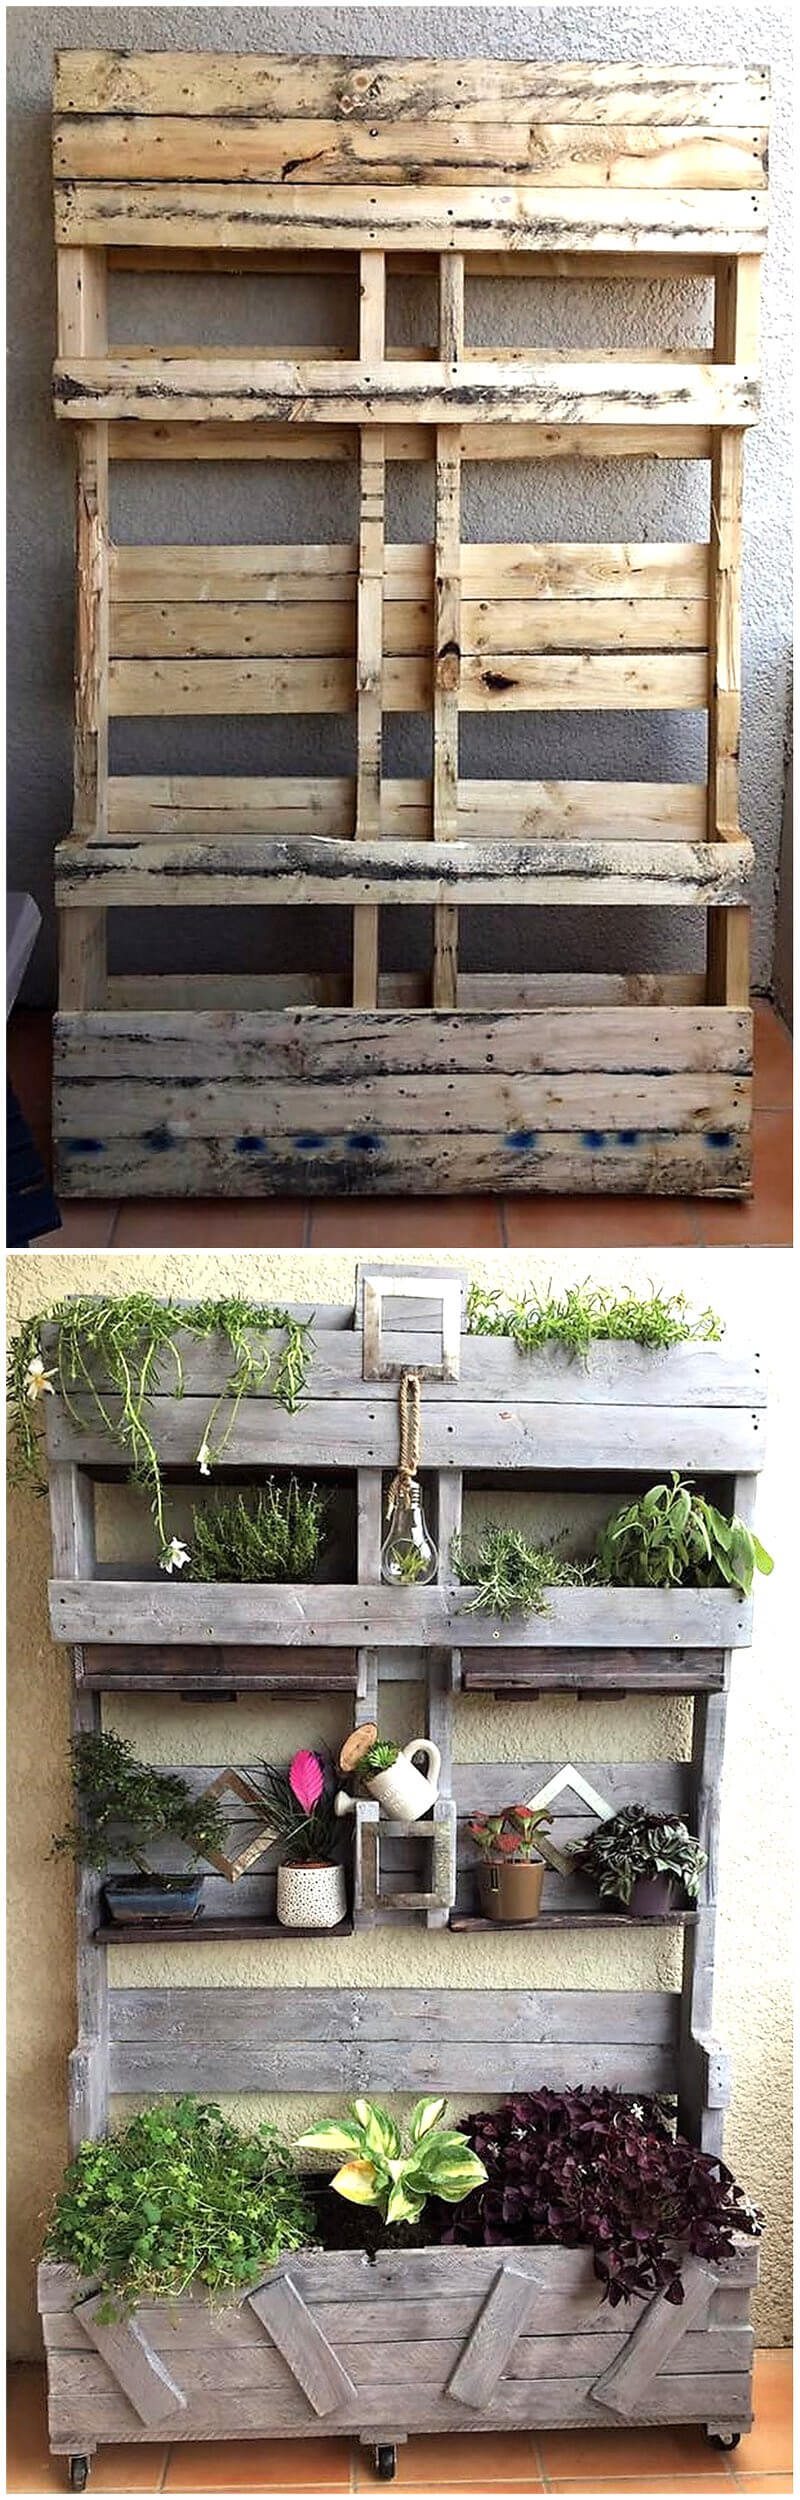 pallets made planter idea